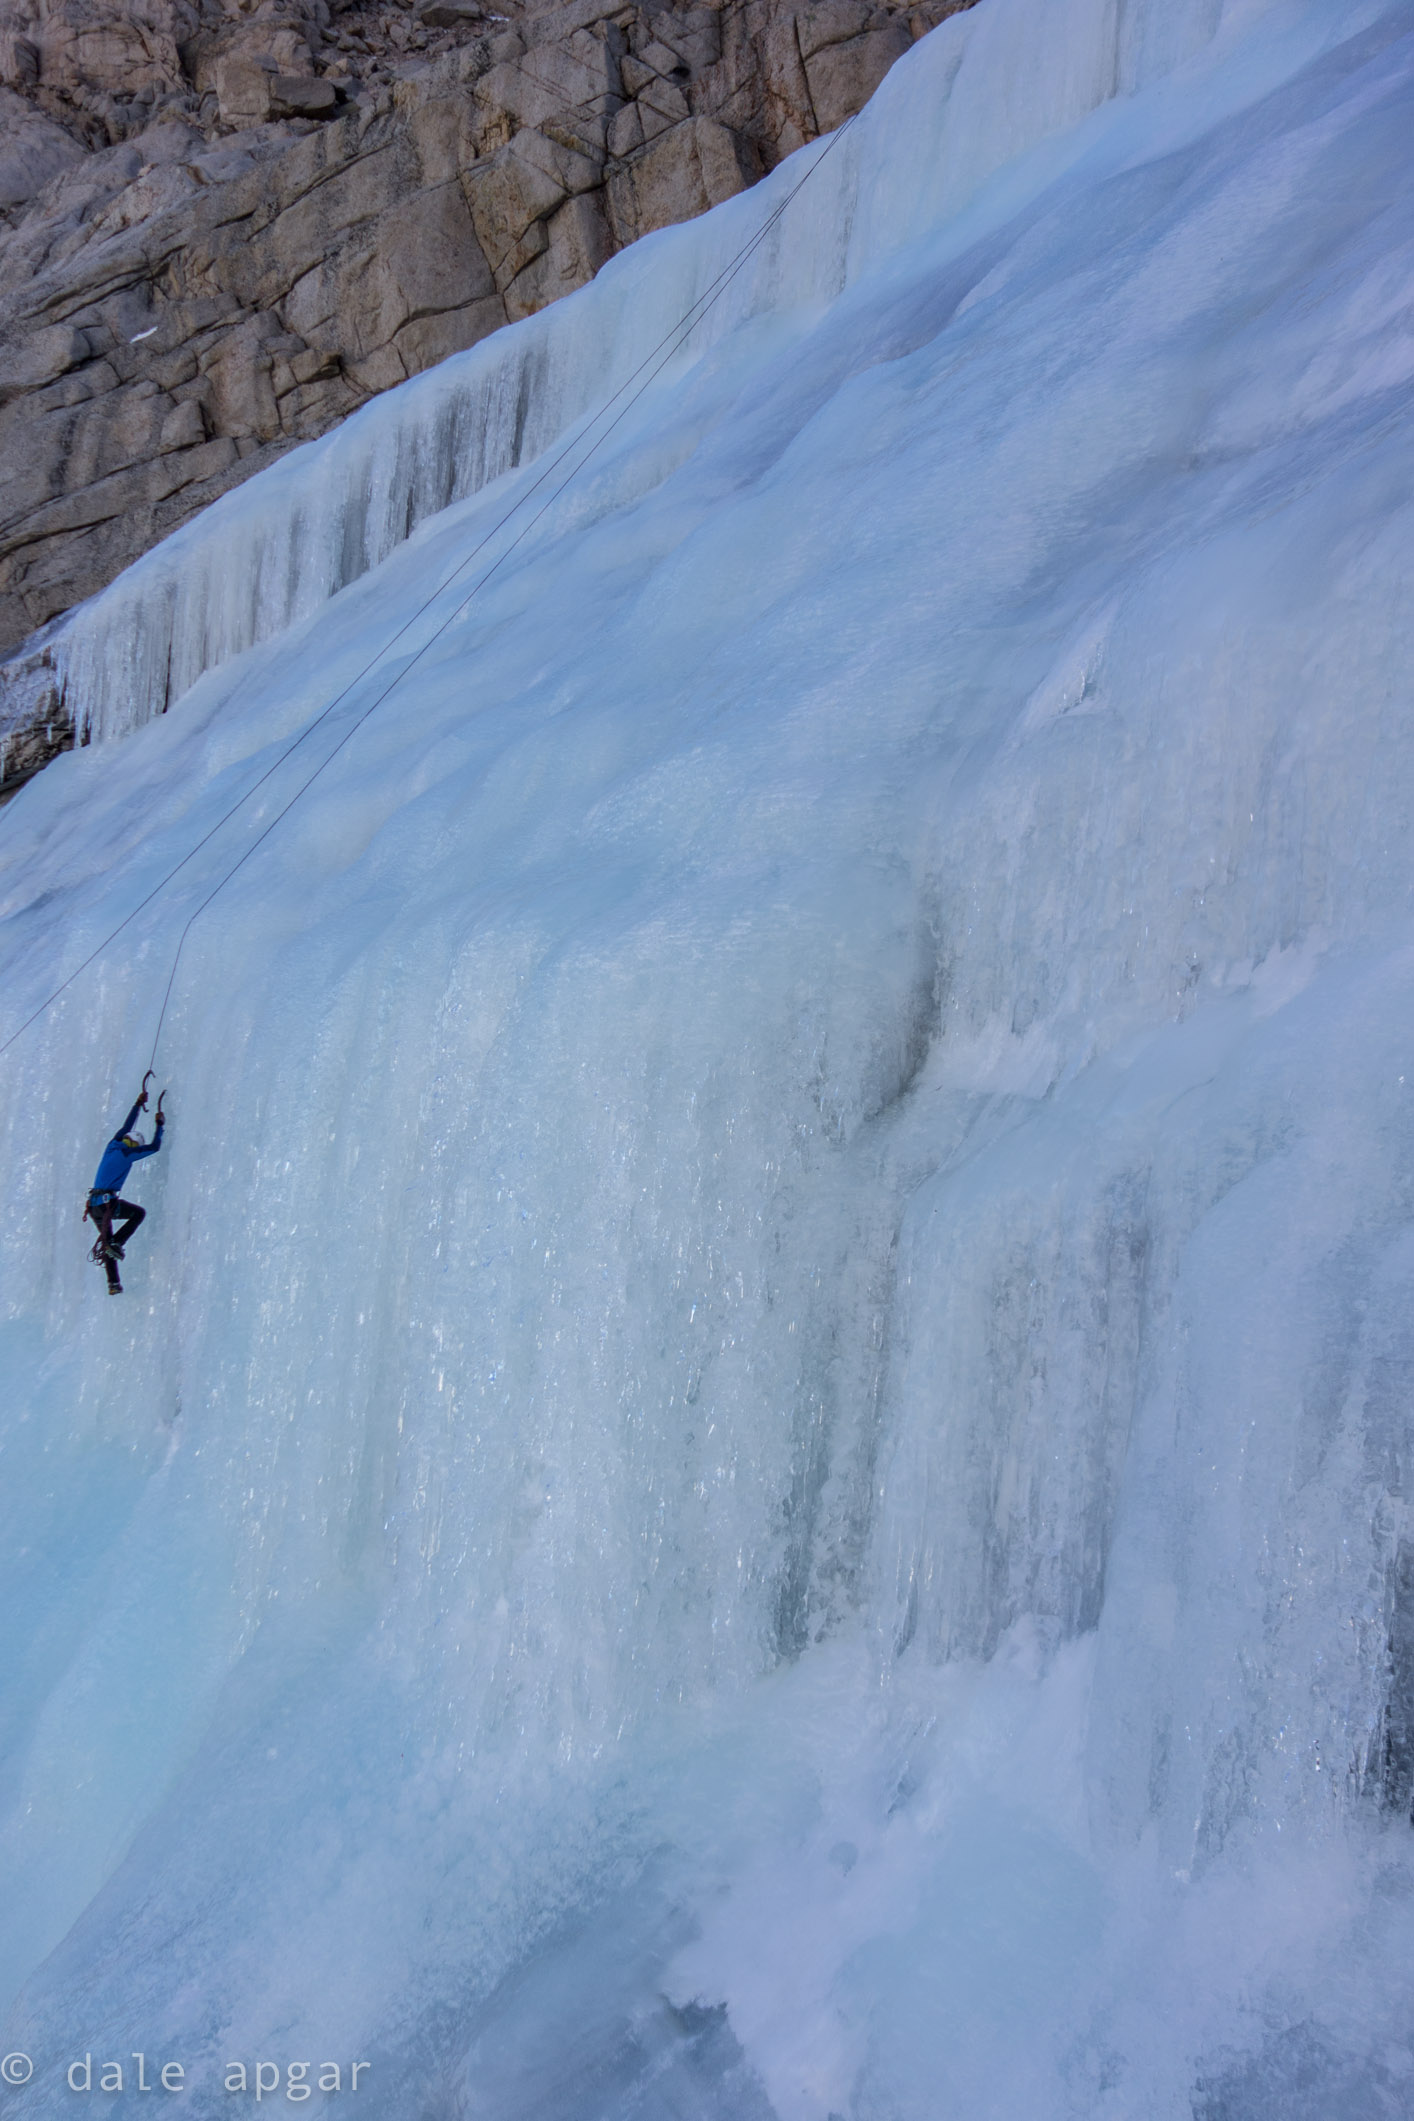 Aaron Richards getting early laps in below the Whitney Massif